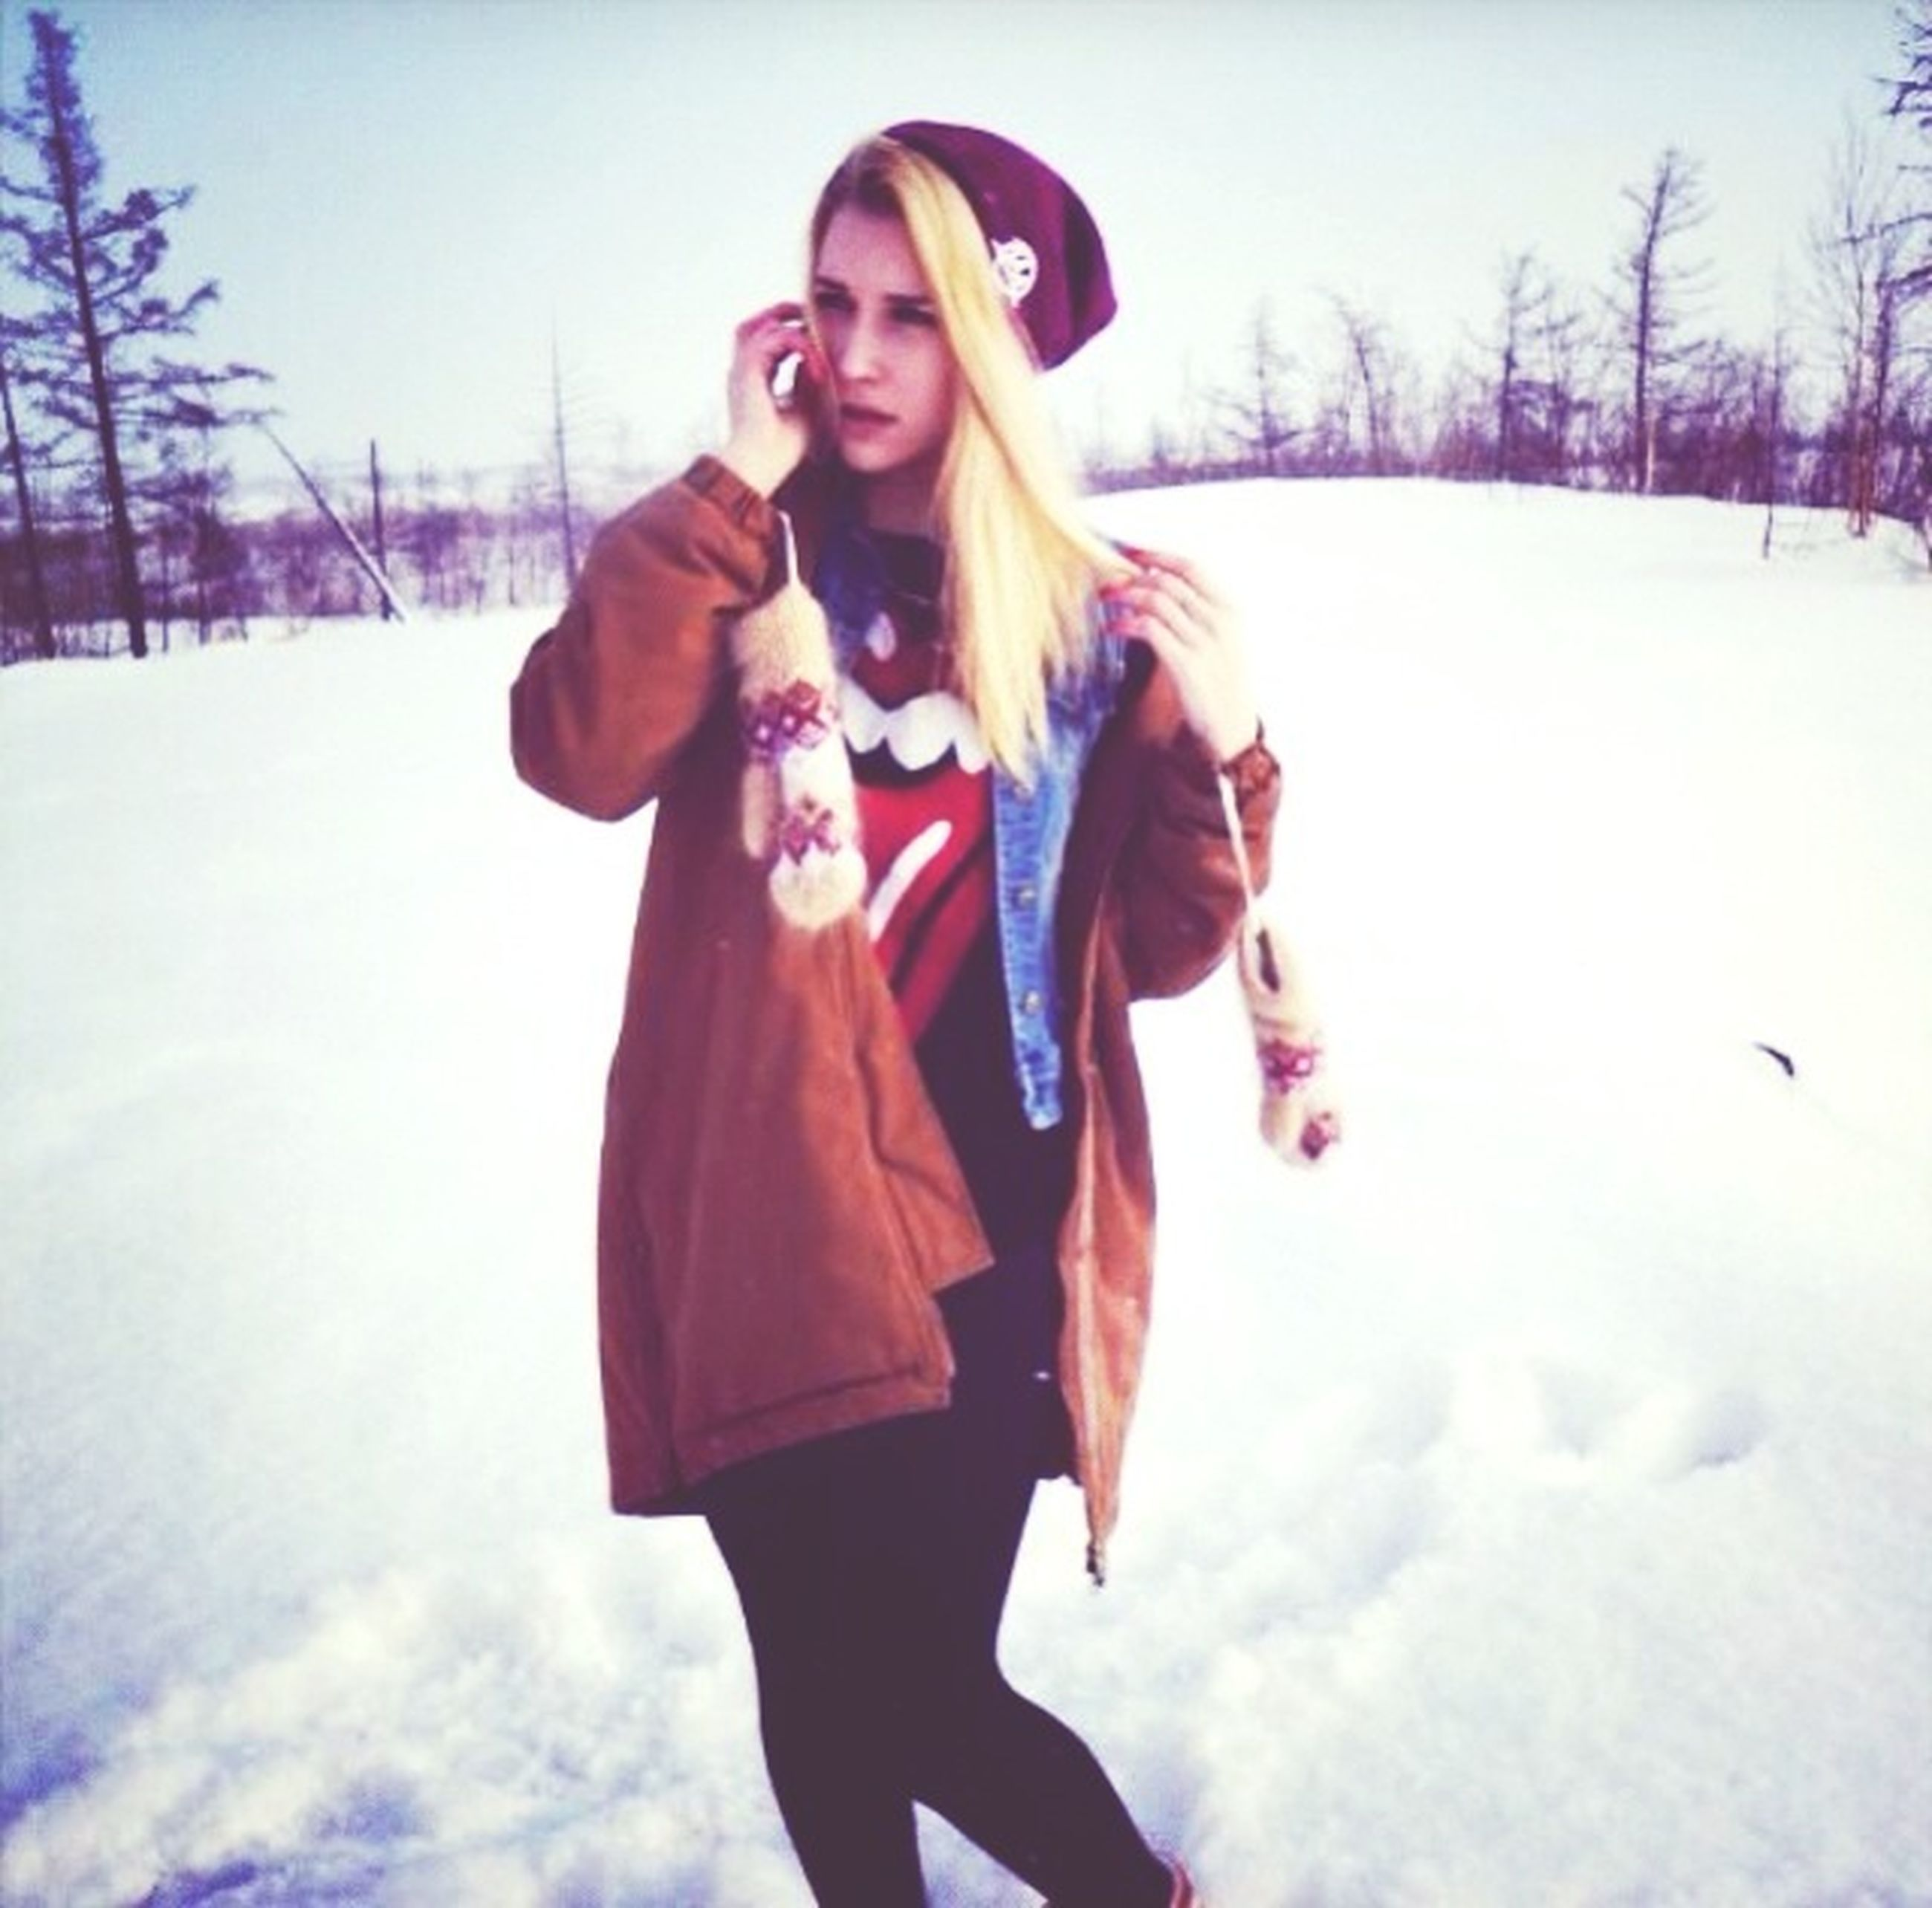 winter, snow, cold temperature, lifestyles, season, leisure activity, person, warm clothing, looking at camera, young adult, weather, full length, standing, casual clothing, front view, portrait, young women, three quarter length